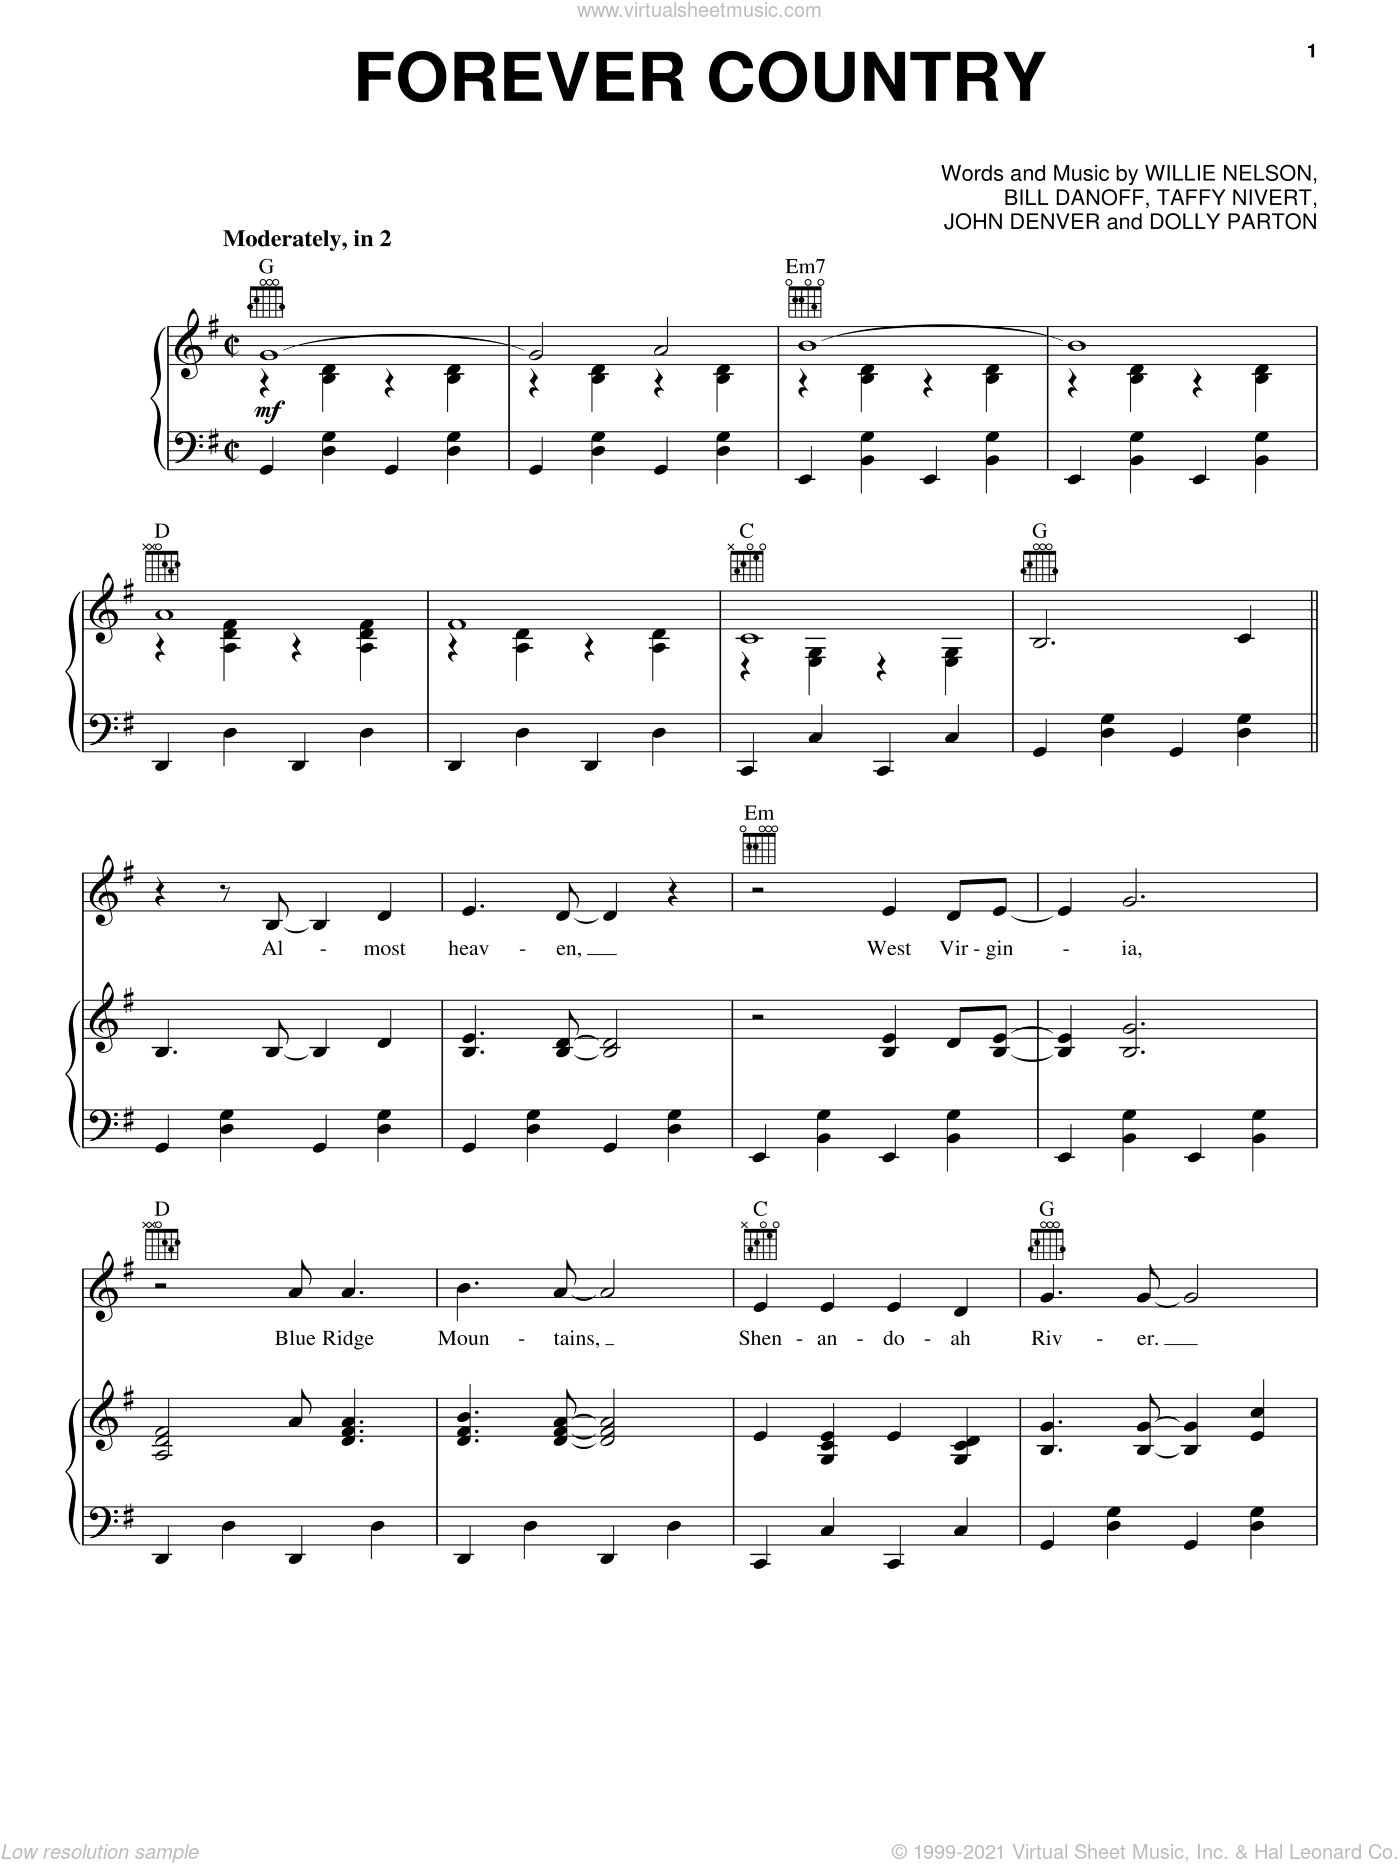 Forever Country sheet music for voice, piano or guitar by Artists of Then, Now & Forever, Bill Danoff, Dolly Parton, John Denver, Taffy Nivert and Willie Nelson. Score Image Preview.